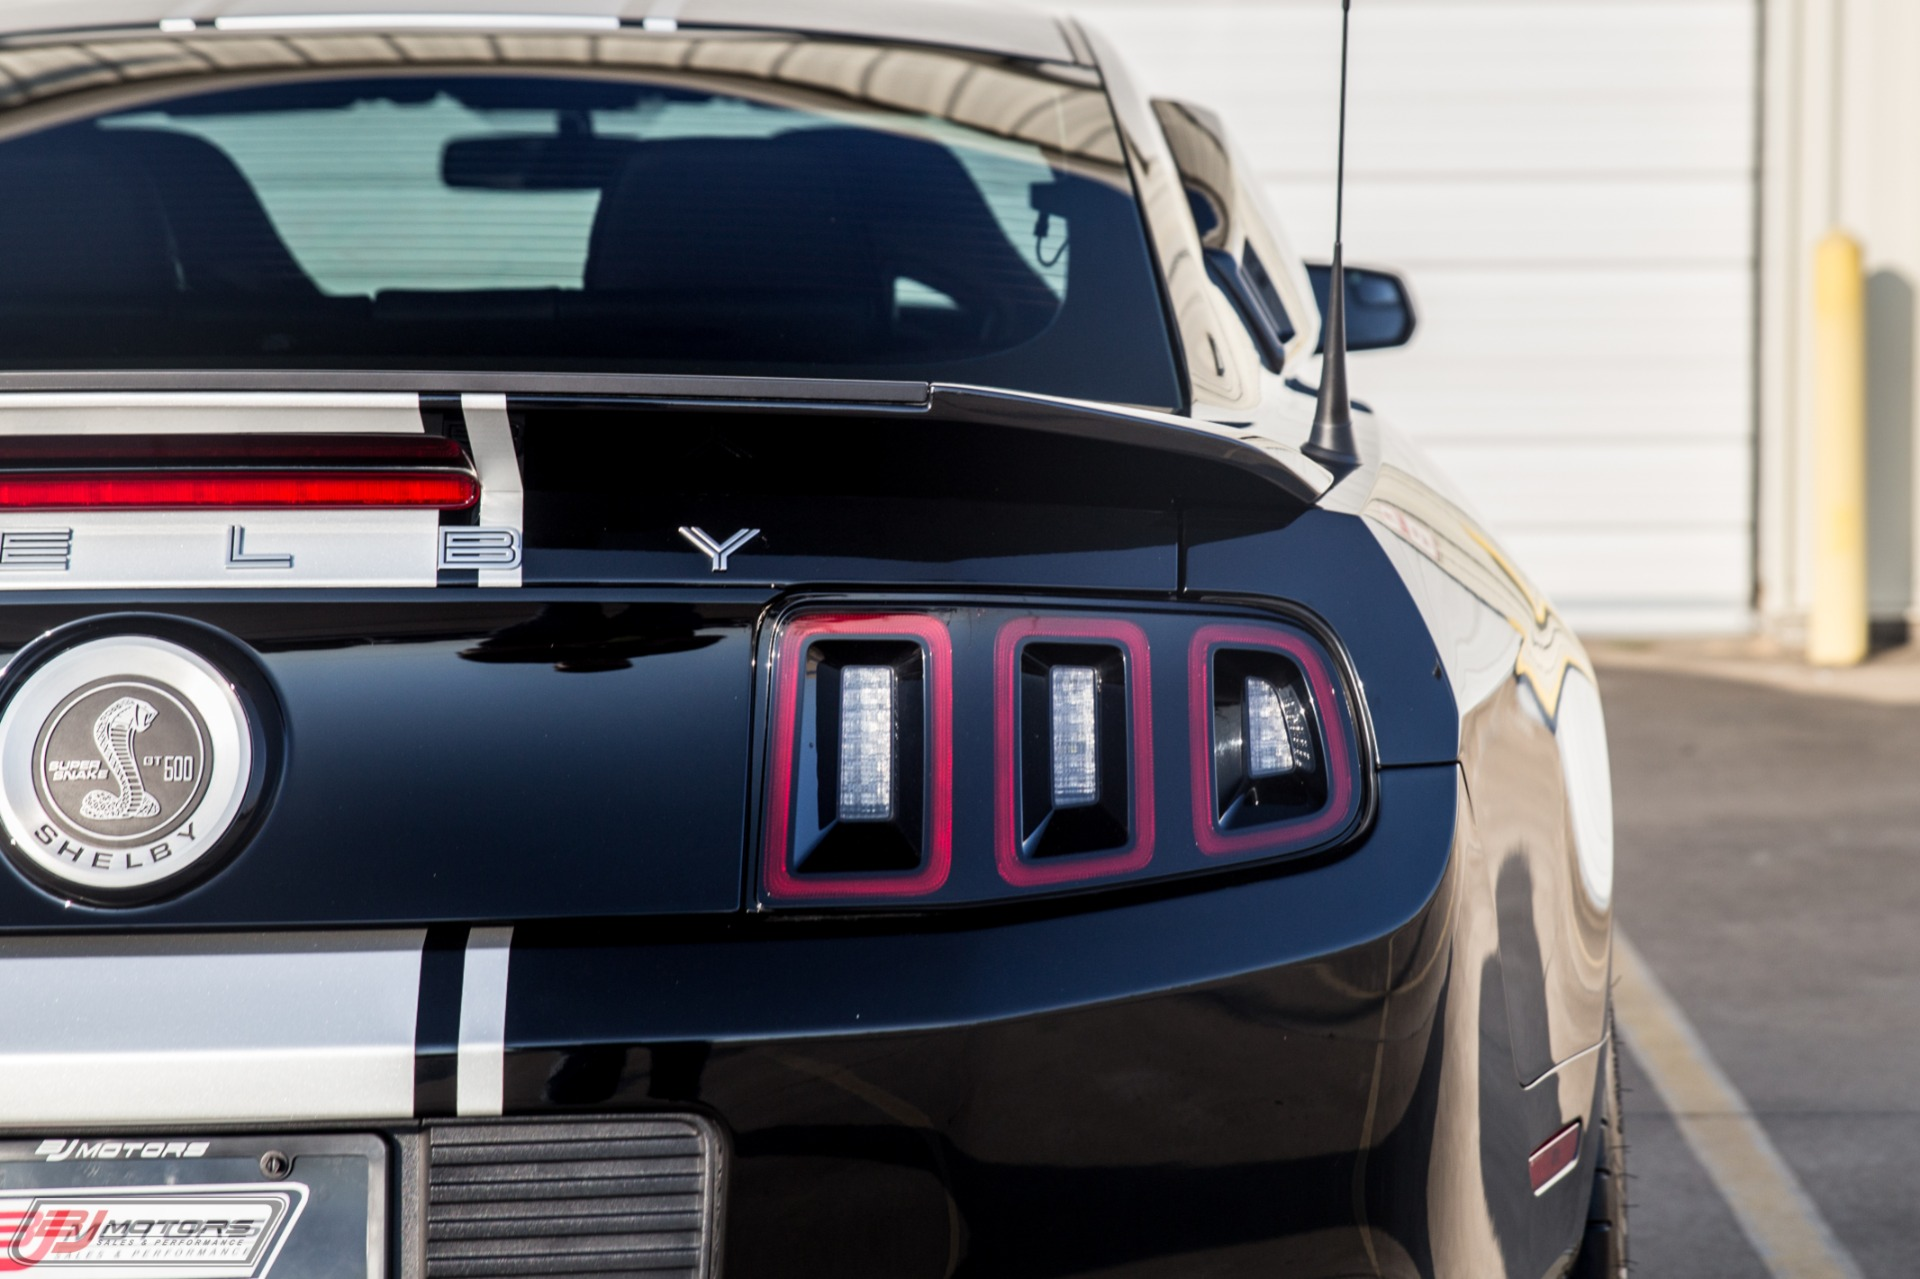 Used-2014-Ford-Mustang-Shelby-Super-Snake